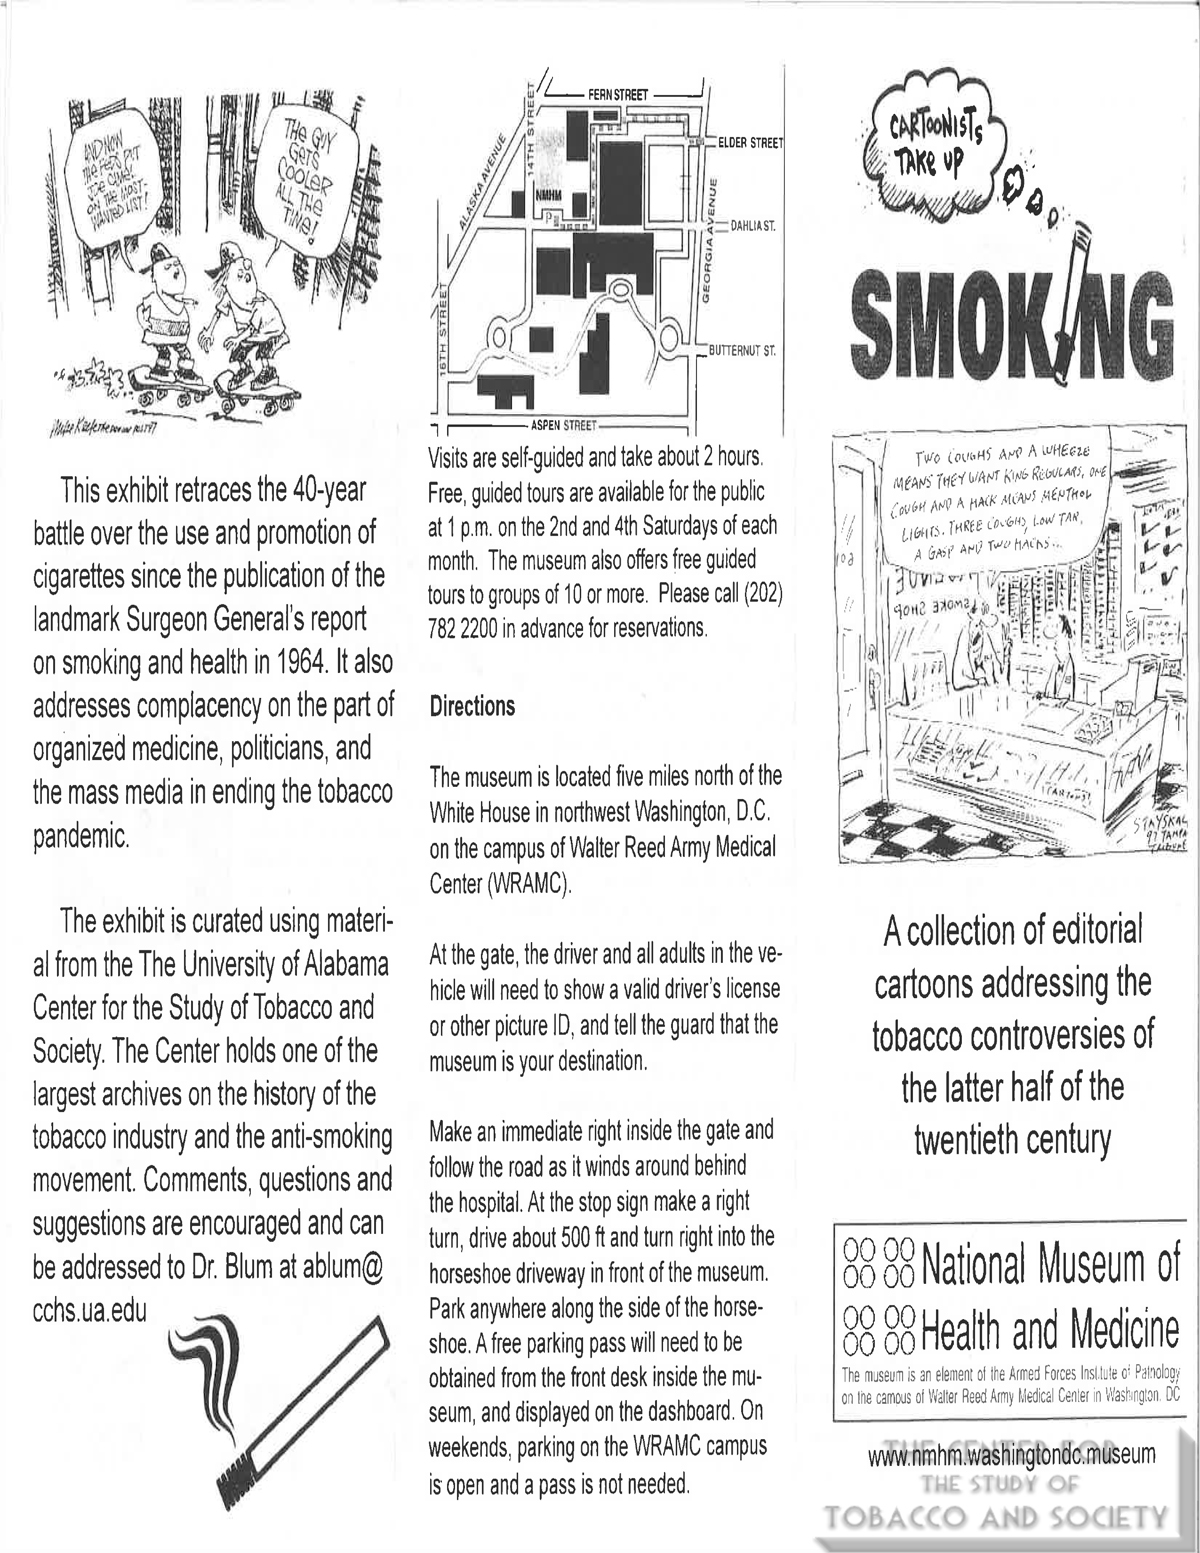 2006 09 Cartoonists Take Up Smoking National Musuem of Health and Medicine Exhbition Museum Guide